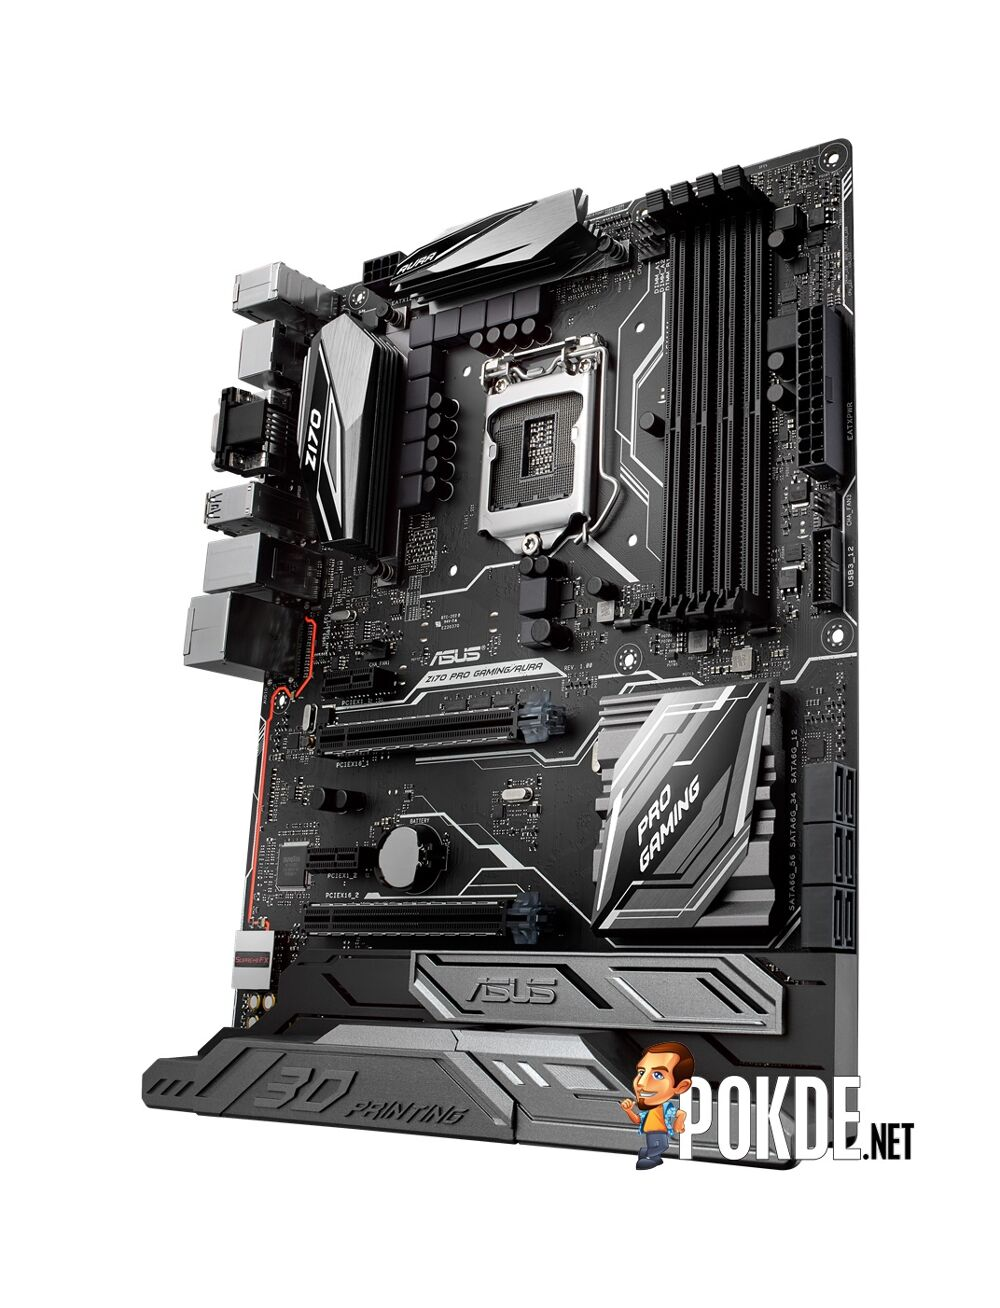 ASUS launches new motherboard with a patent-pending mounting design - ASUS Z170 Pro Gaming/Aura 20